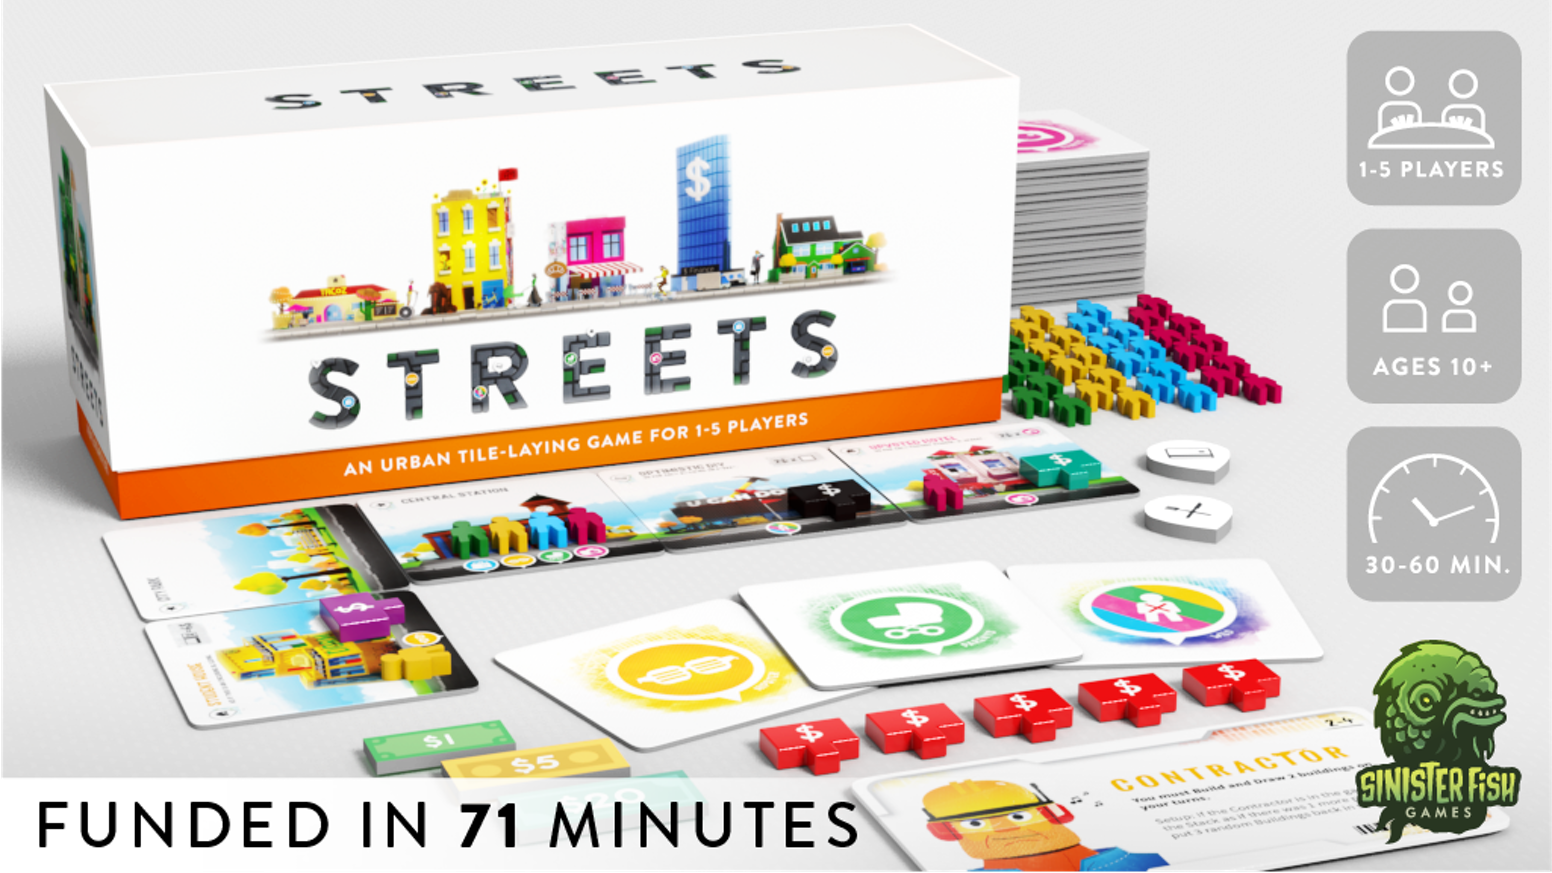 An urban tile laying game for 1-5 players from the designer of Villagers.